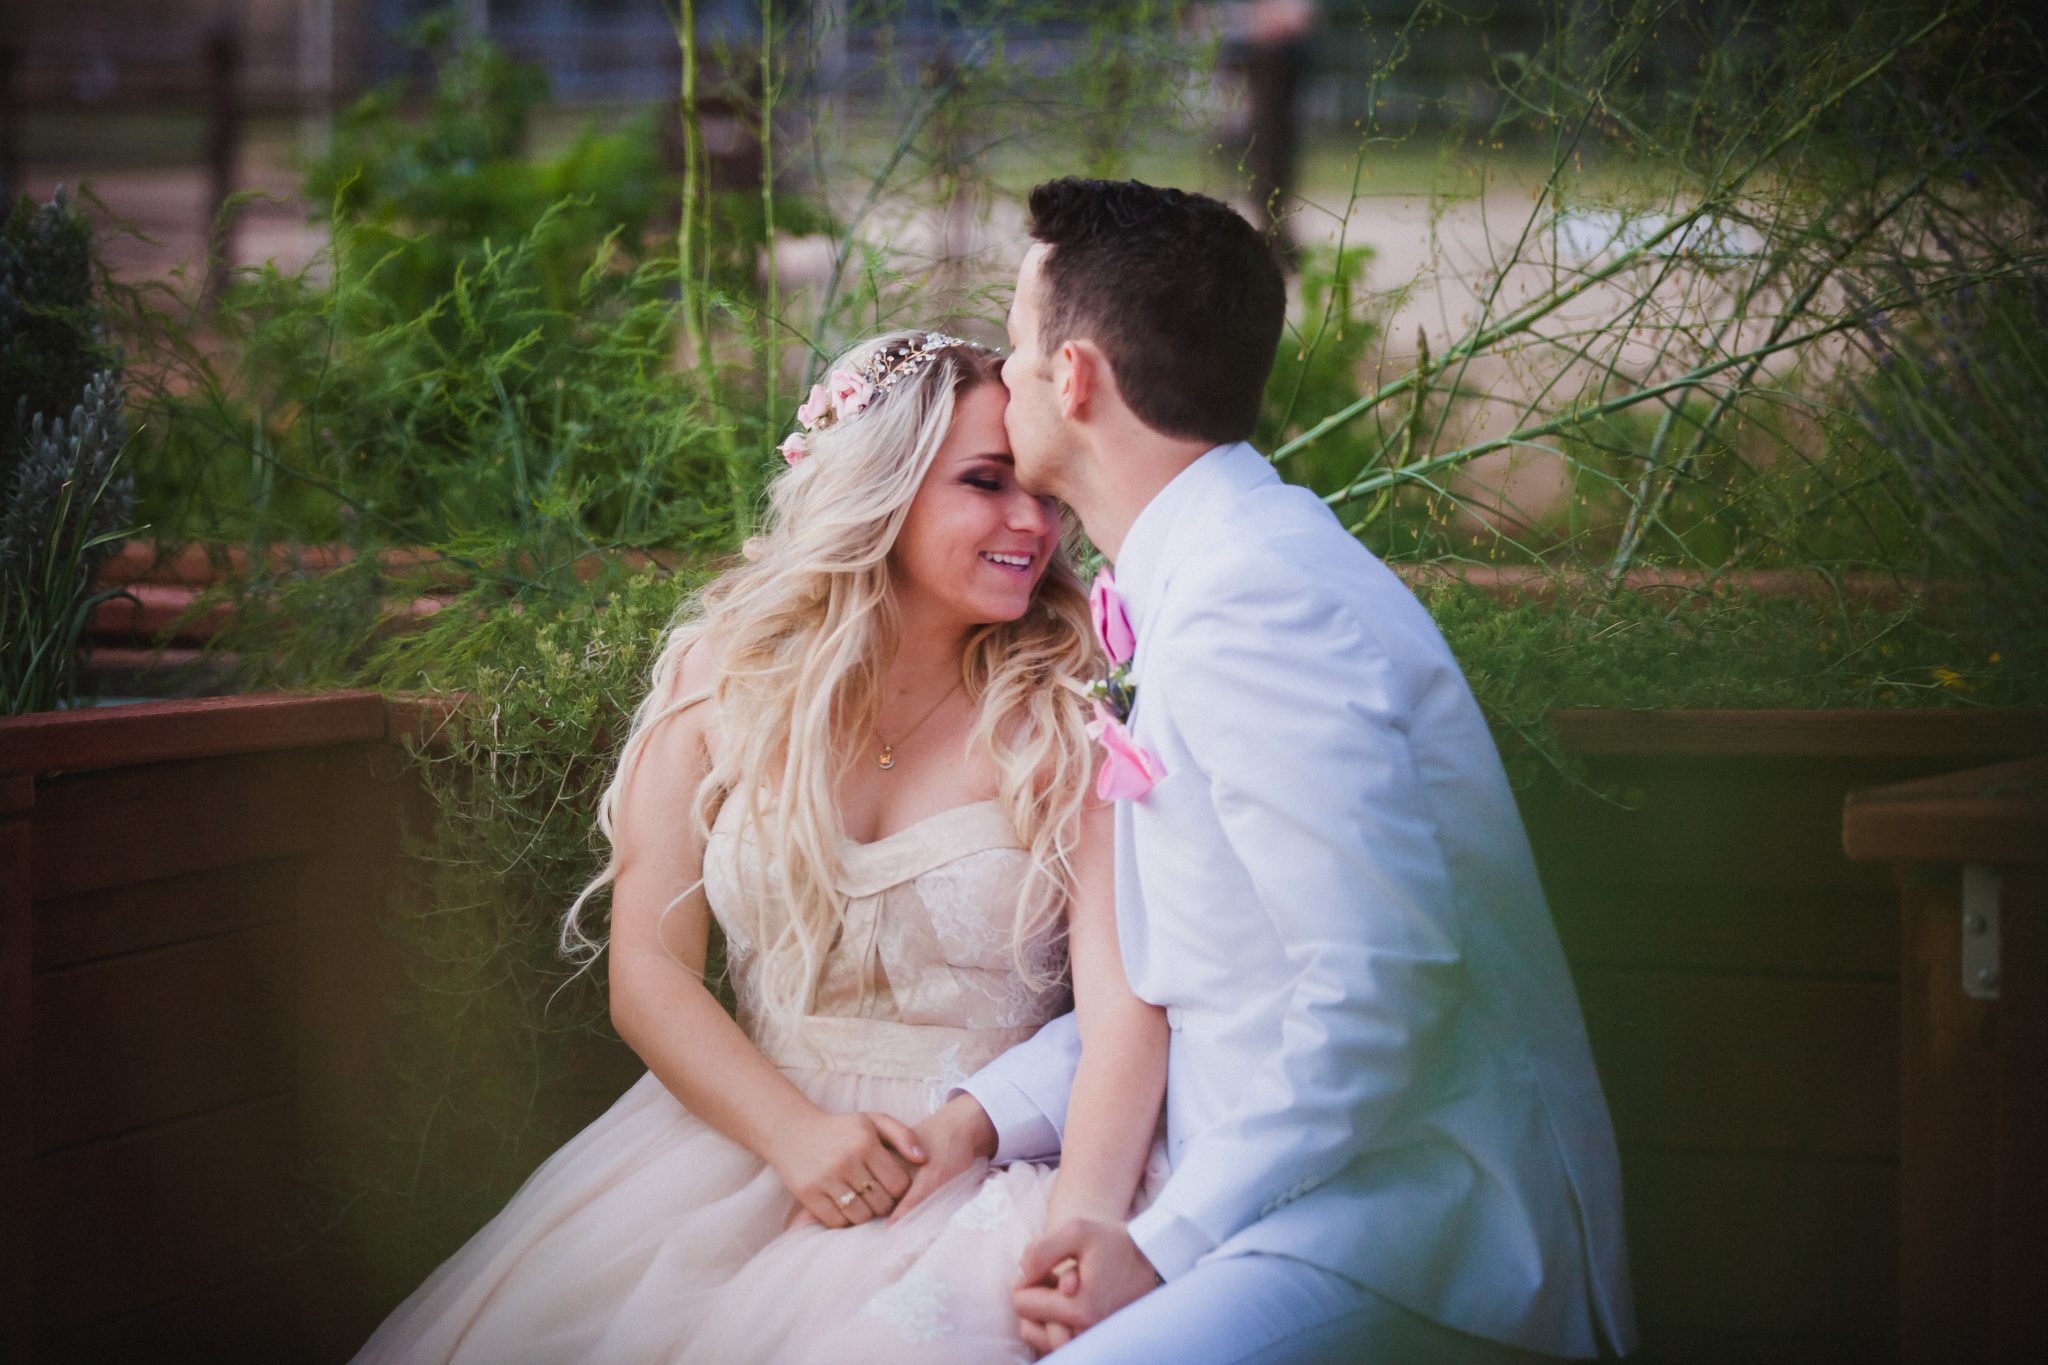 Groom in white kisses his bride's forehead